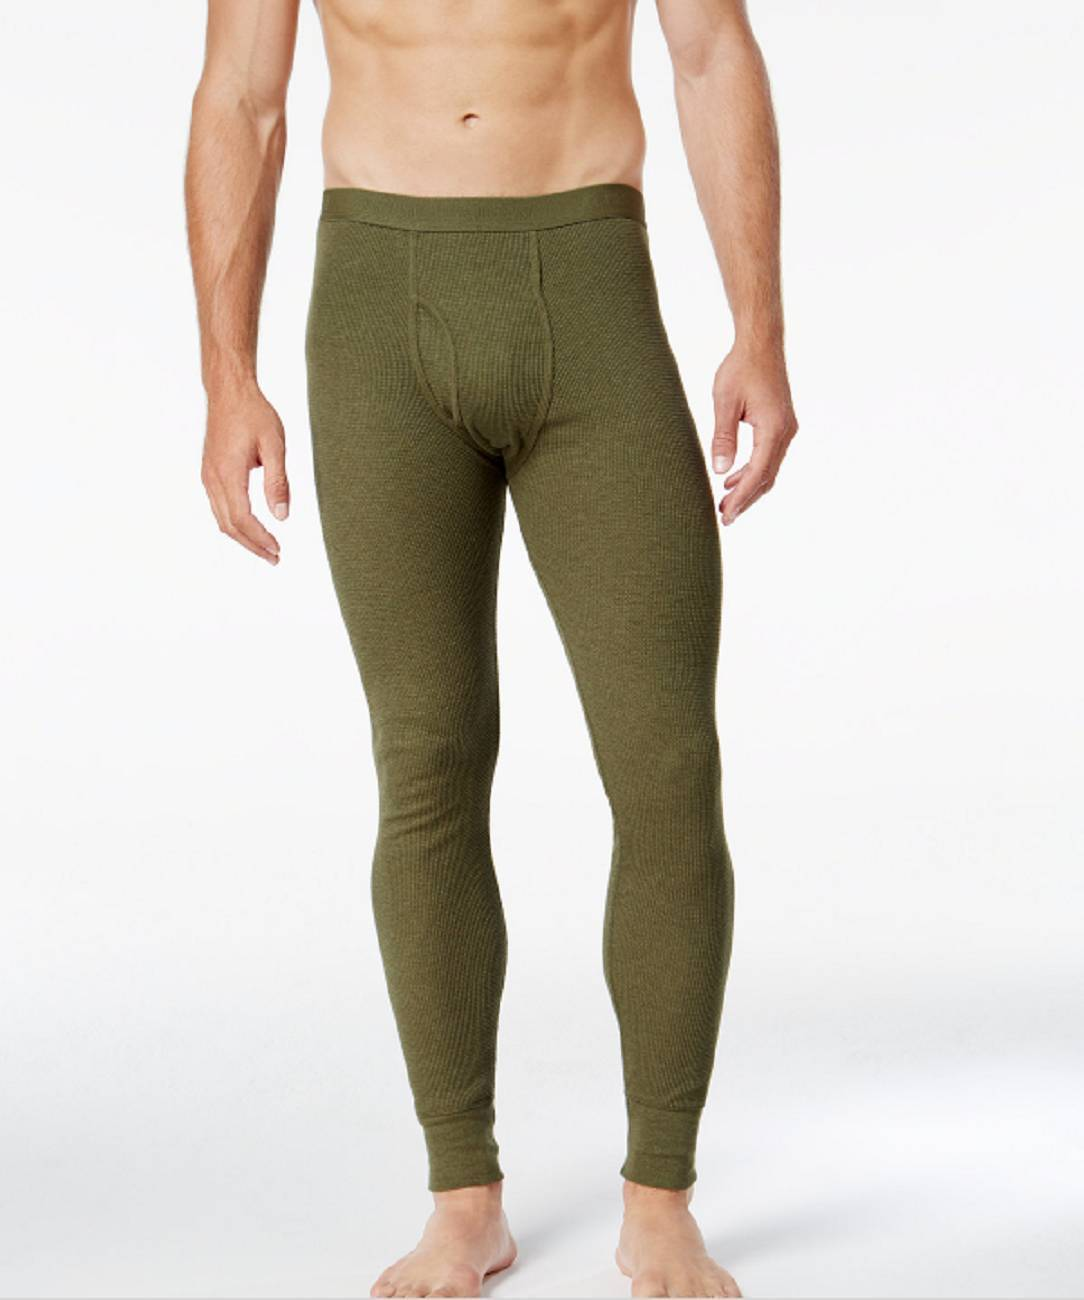 Alfani Men's Green Thermal Underwear Waffle Pants